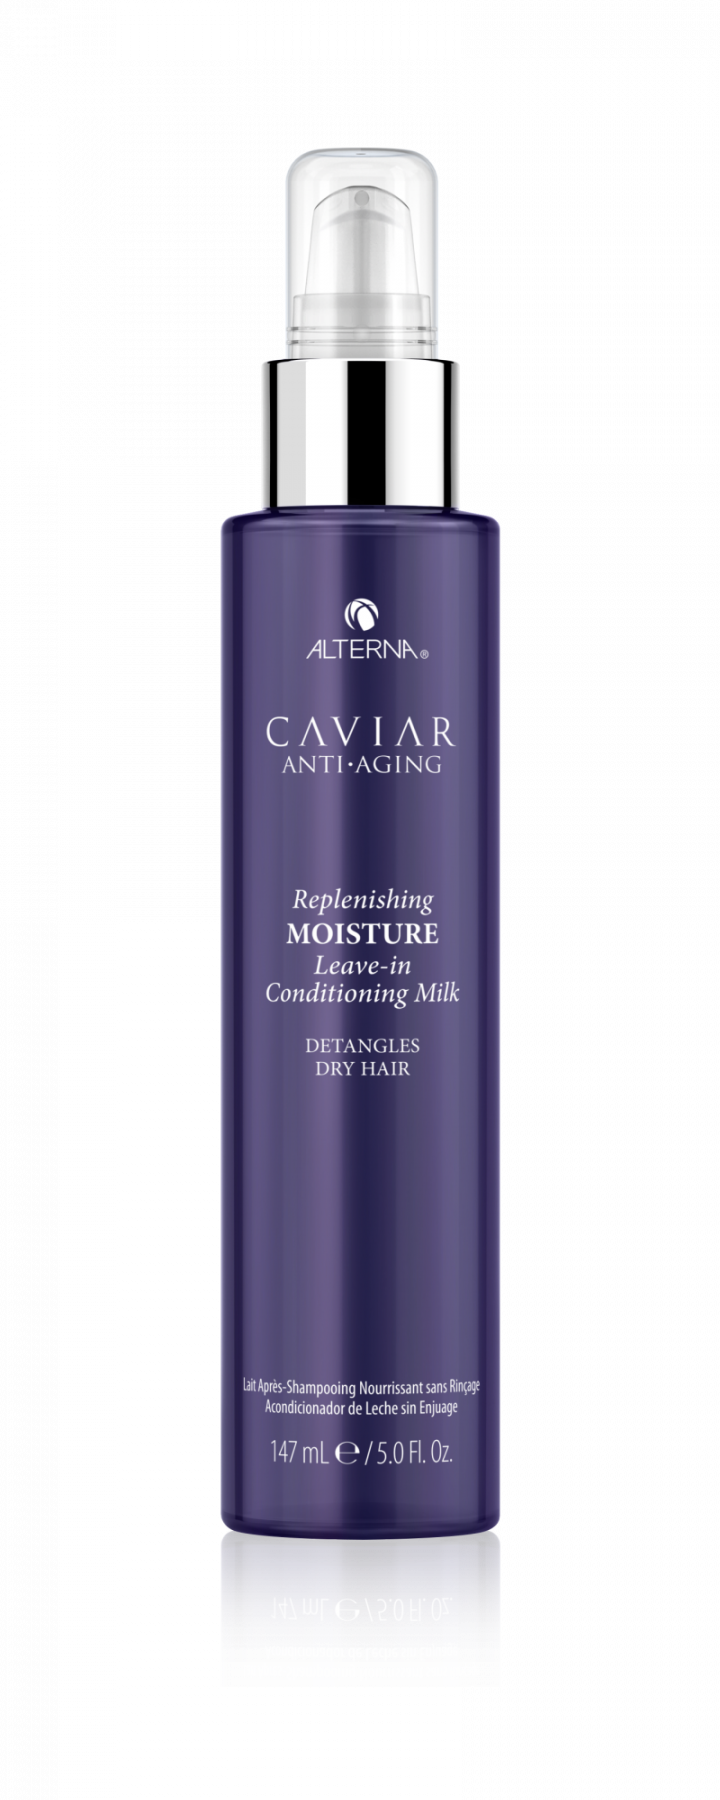 Caviar Anti-Aging REPLENISHING MOISTURE Leave-In Conditioning Milk